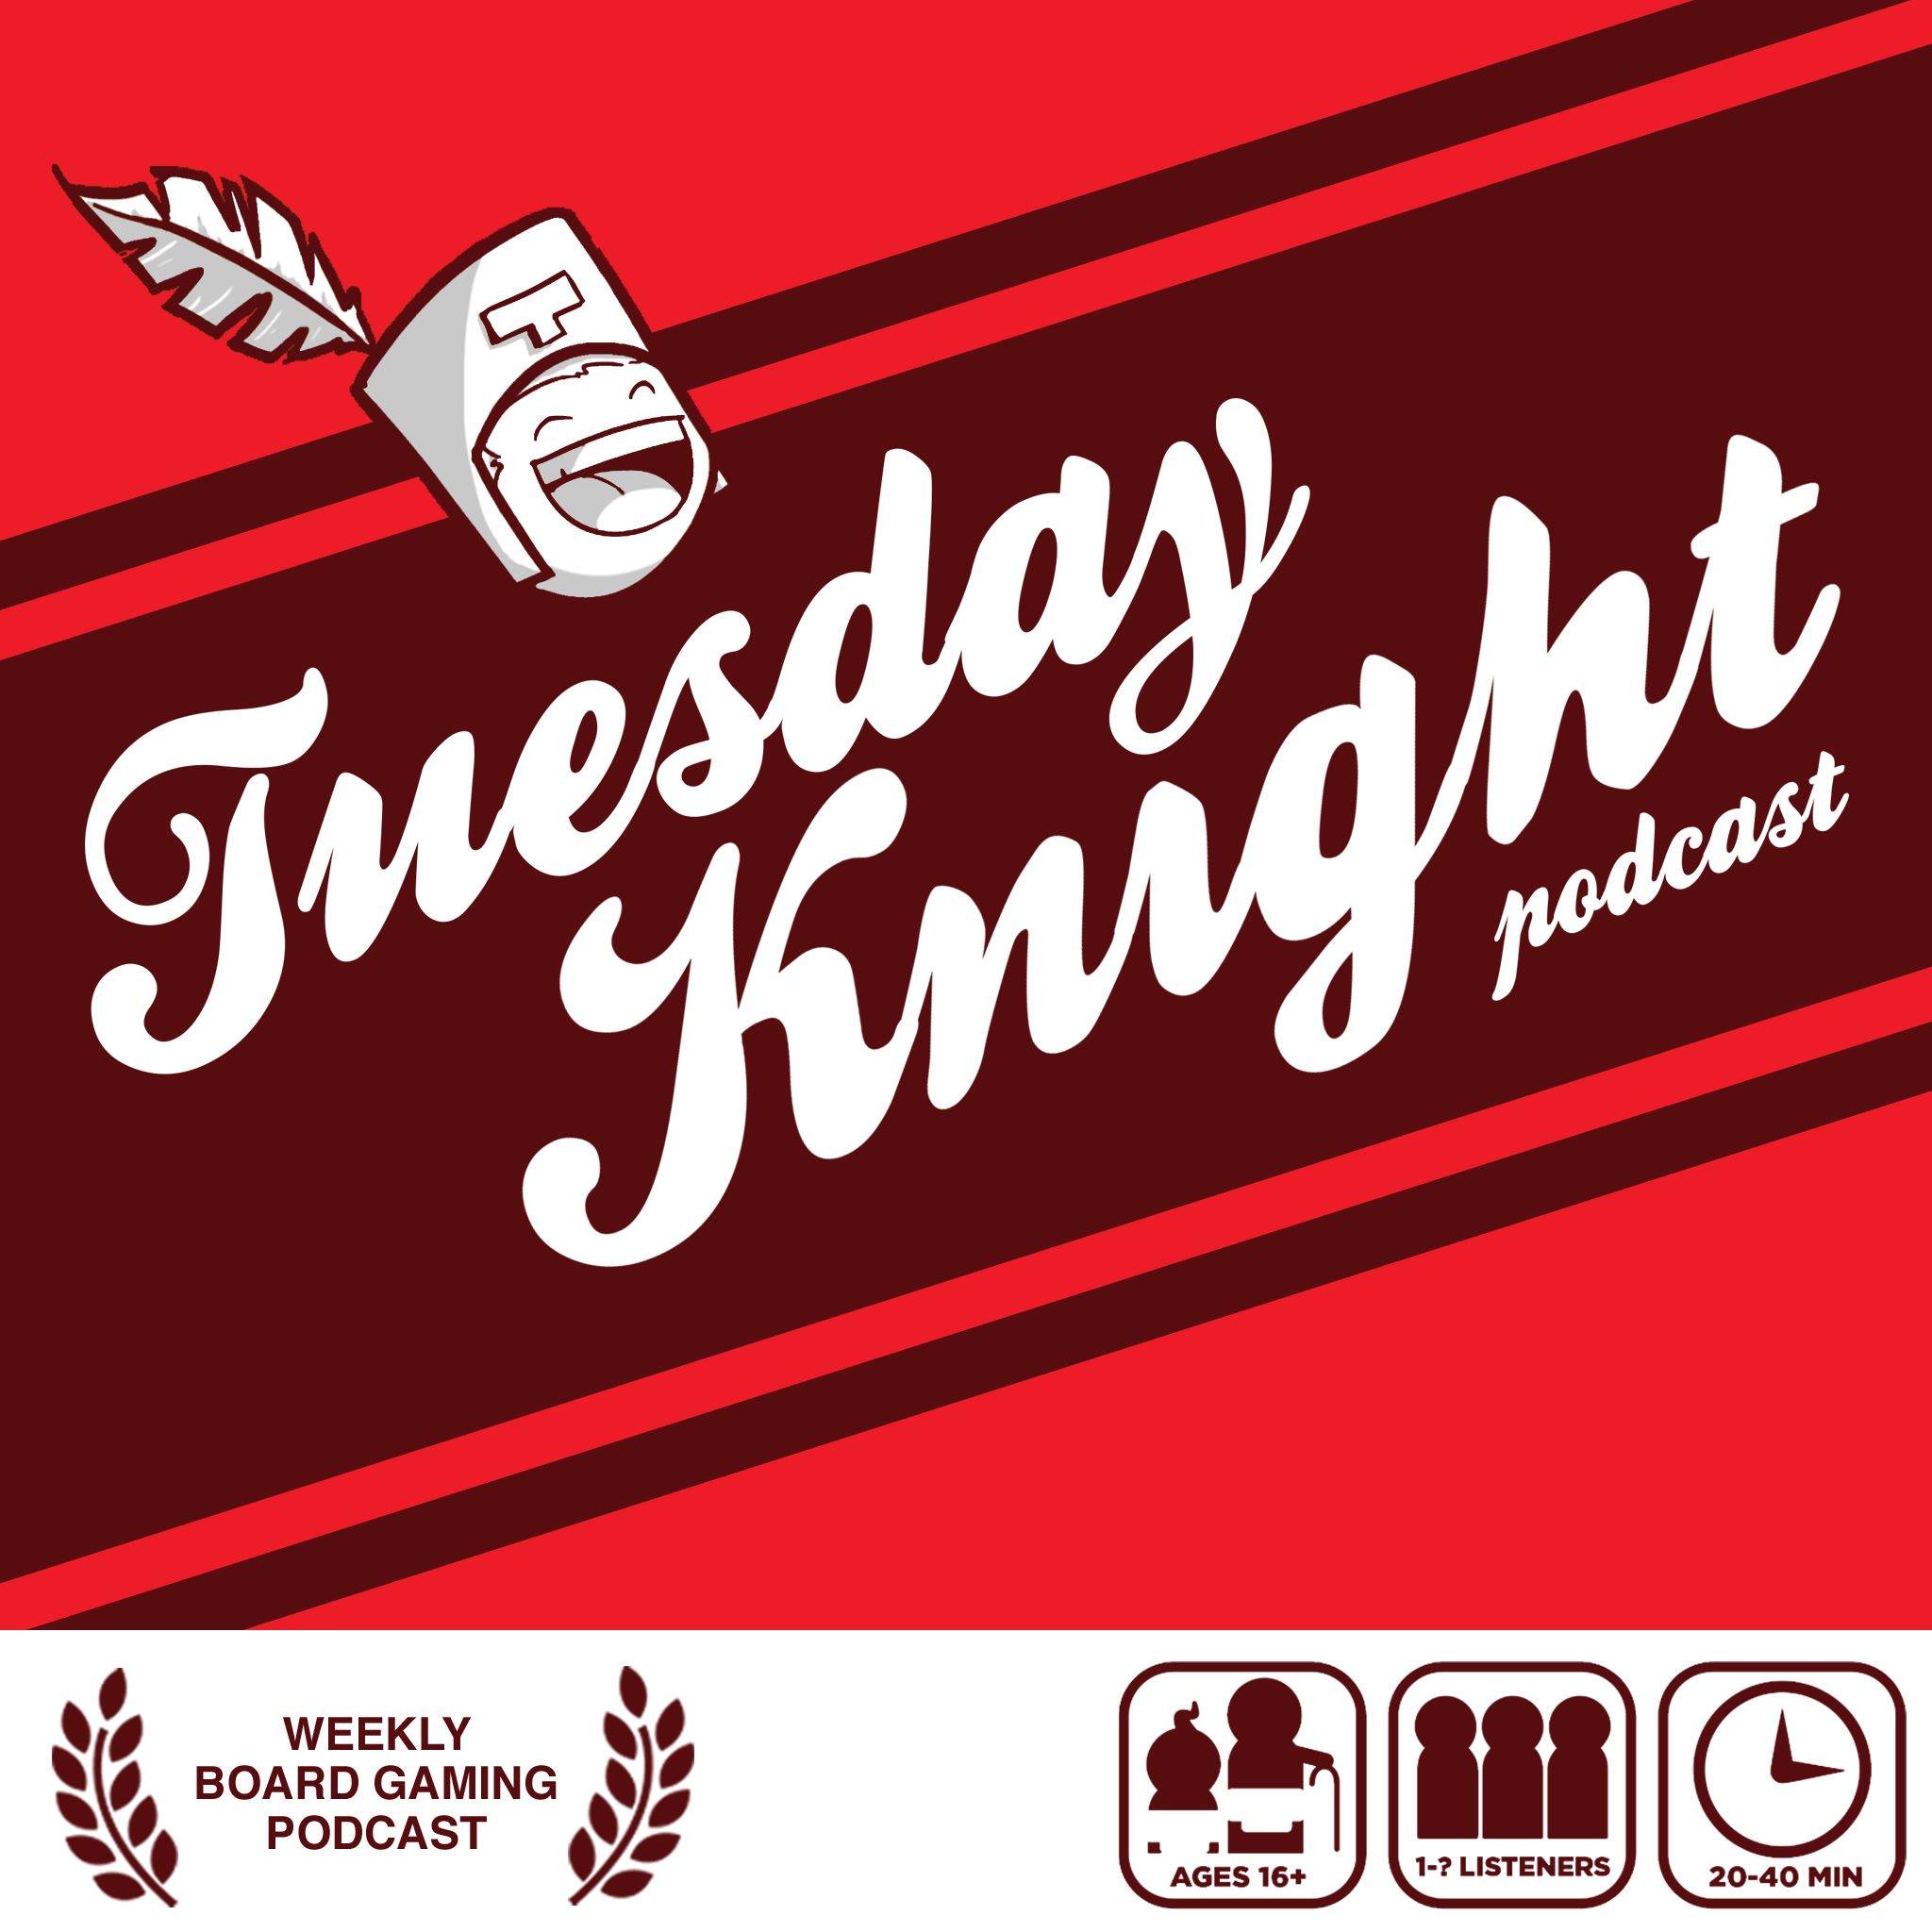 Tuesday Knight Podcast | All About Board Games | Podbay